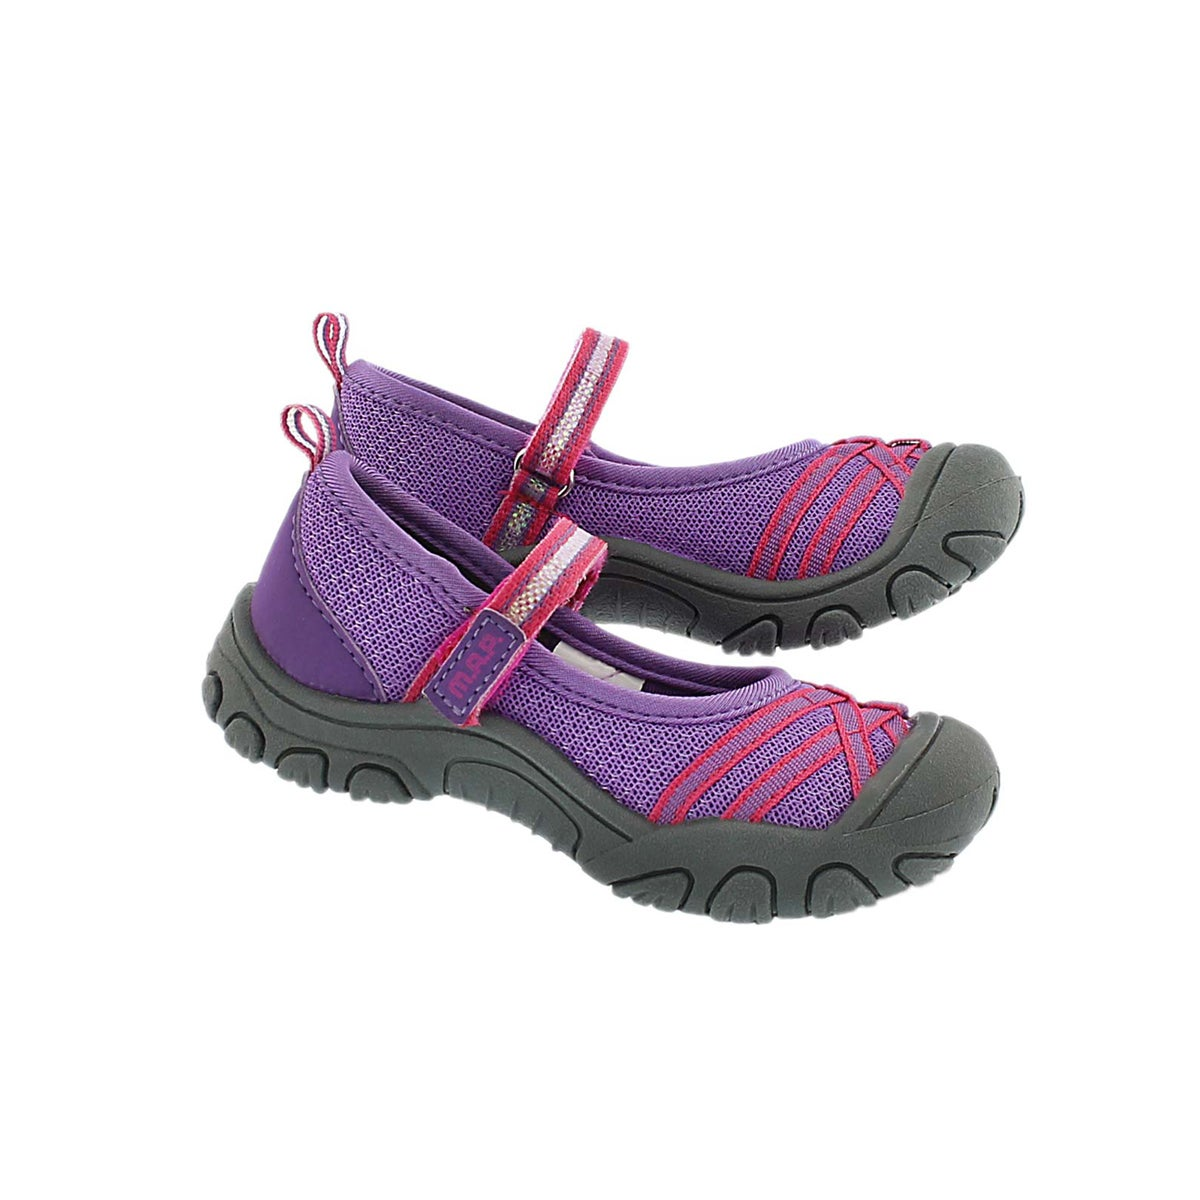 Inf Lilith 3 ppl mary jane casual shoe